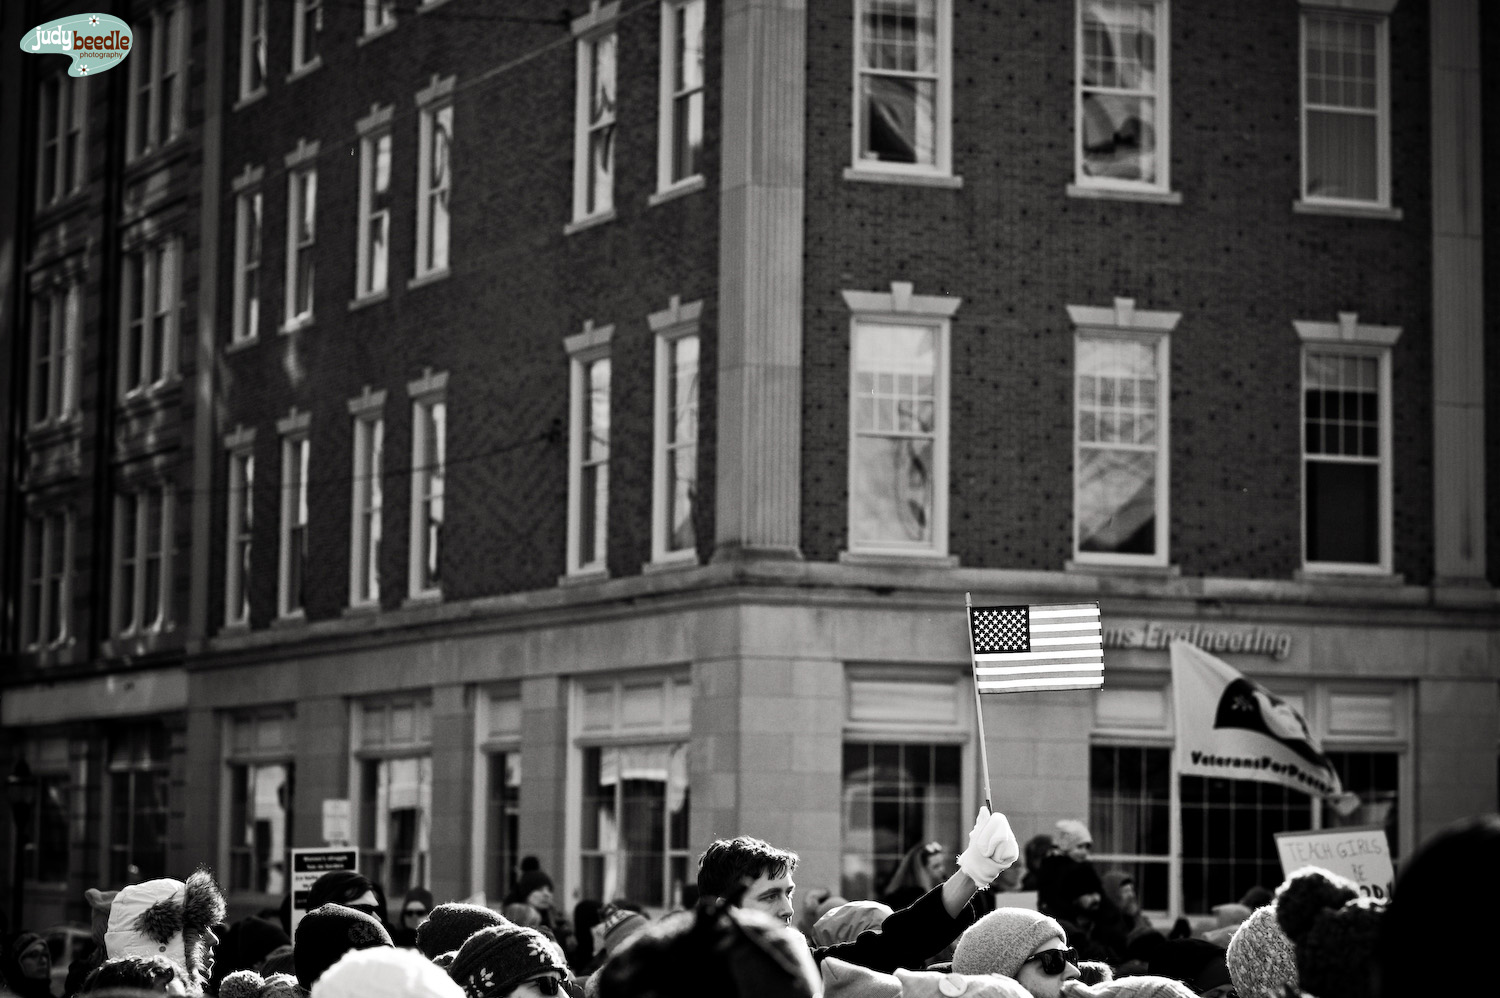 {19/365} Women's March, Portland Maine.